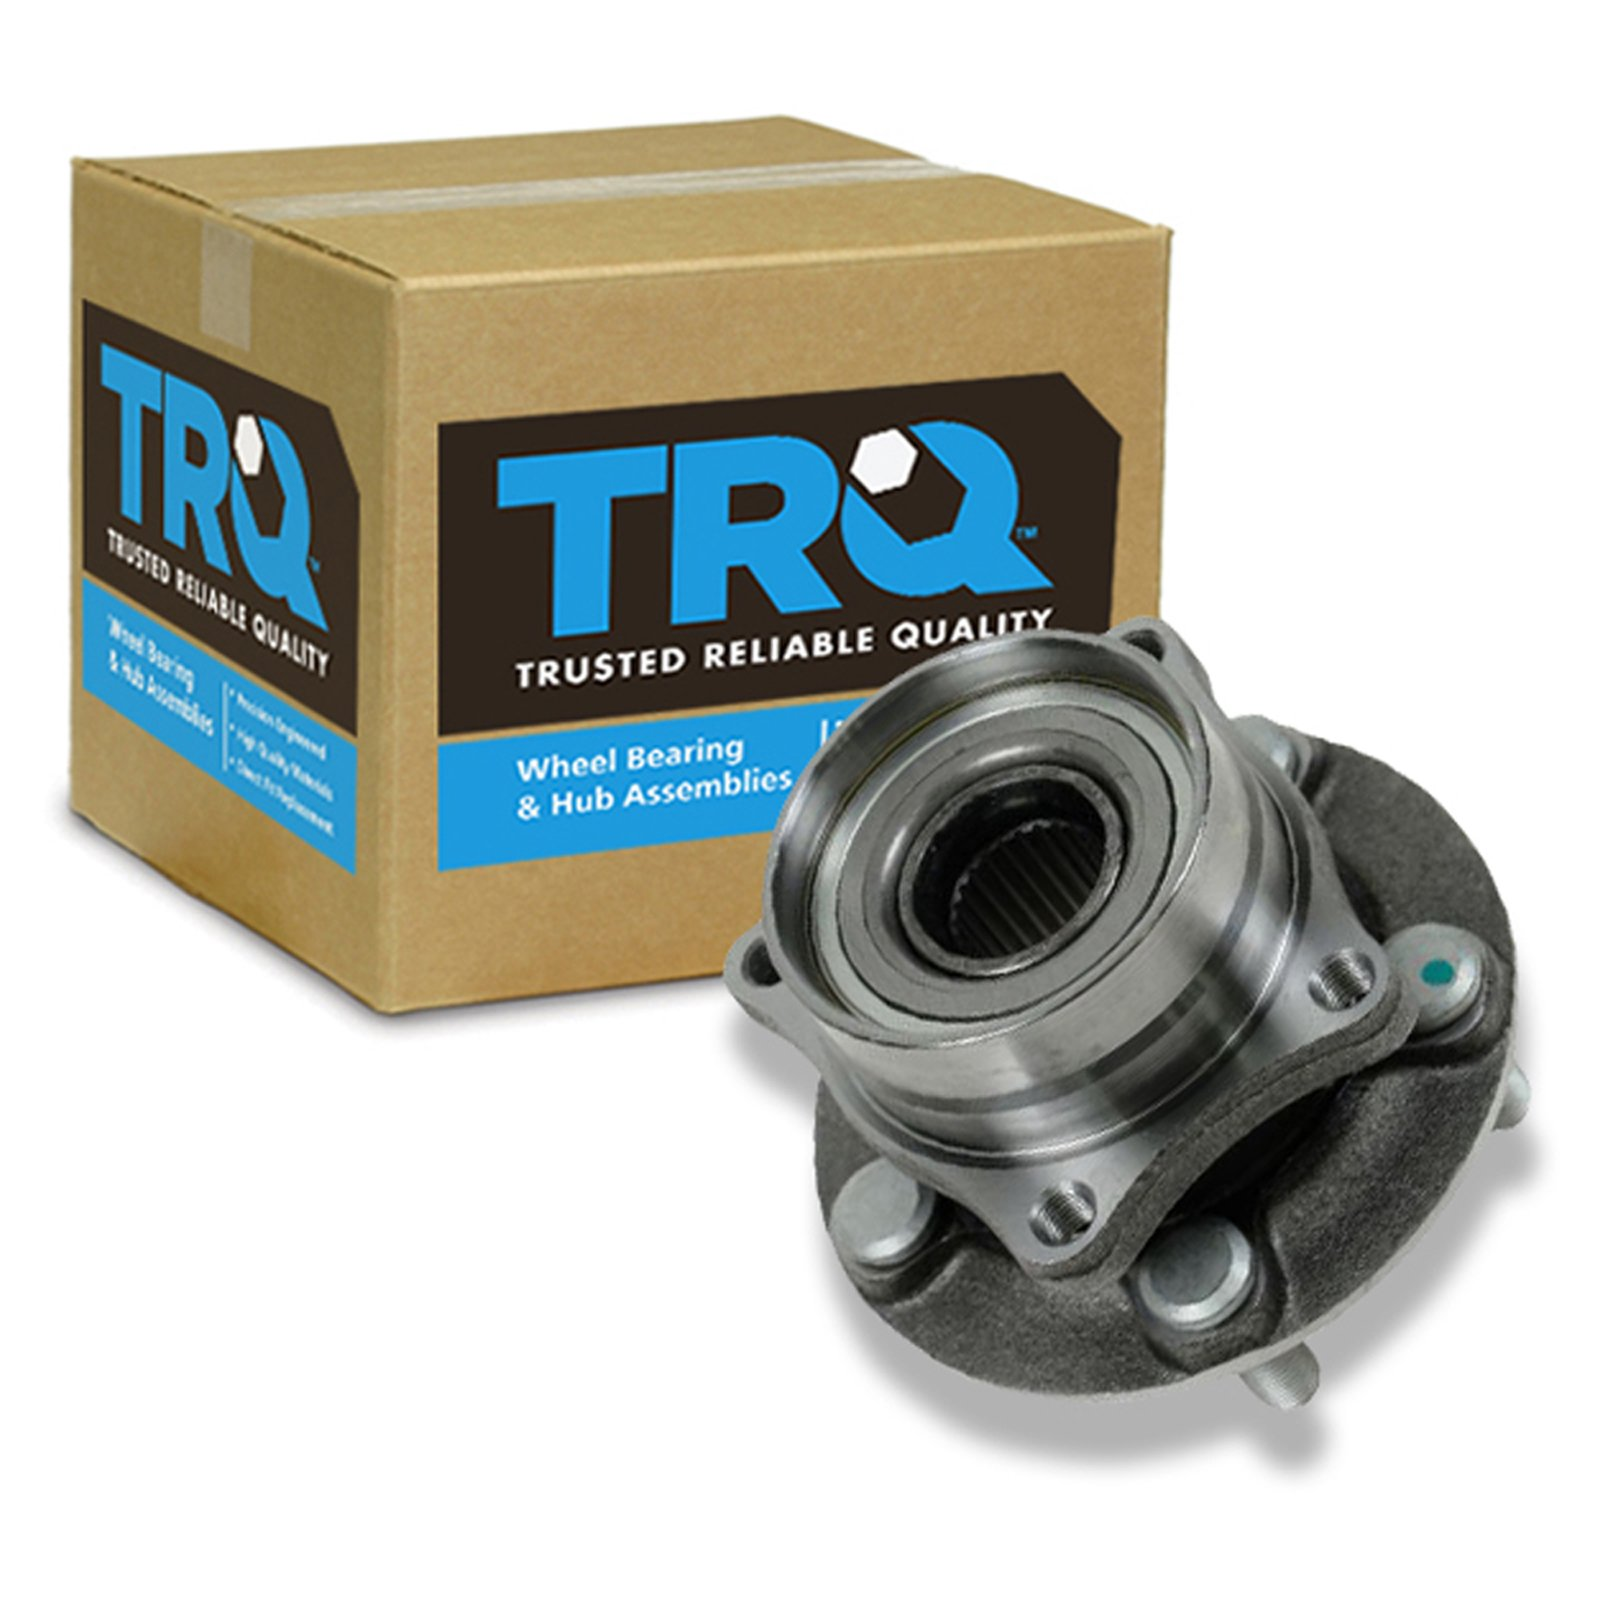 TRQ Front Wheel Hub & Bearing Assembly for 04-09 Toyota Prius